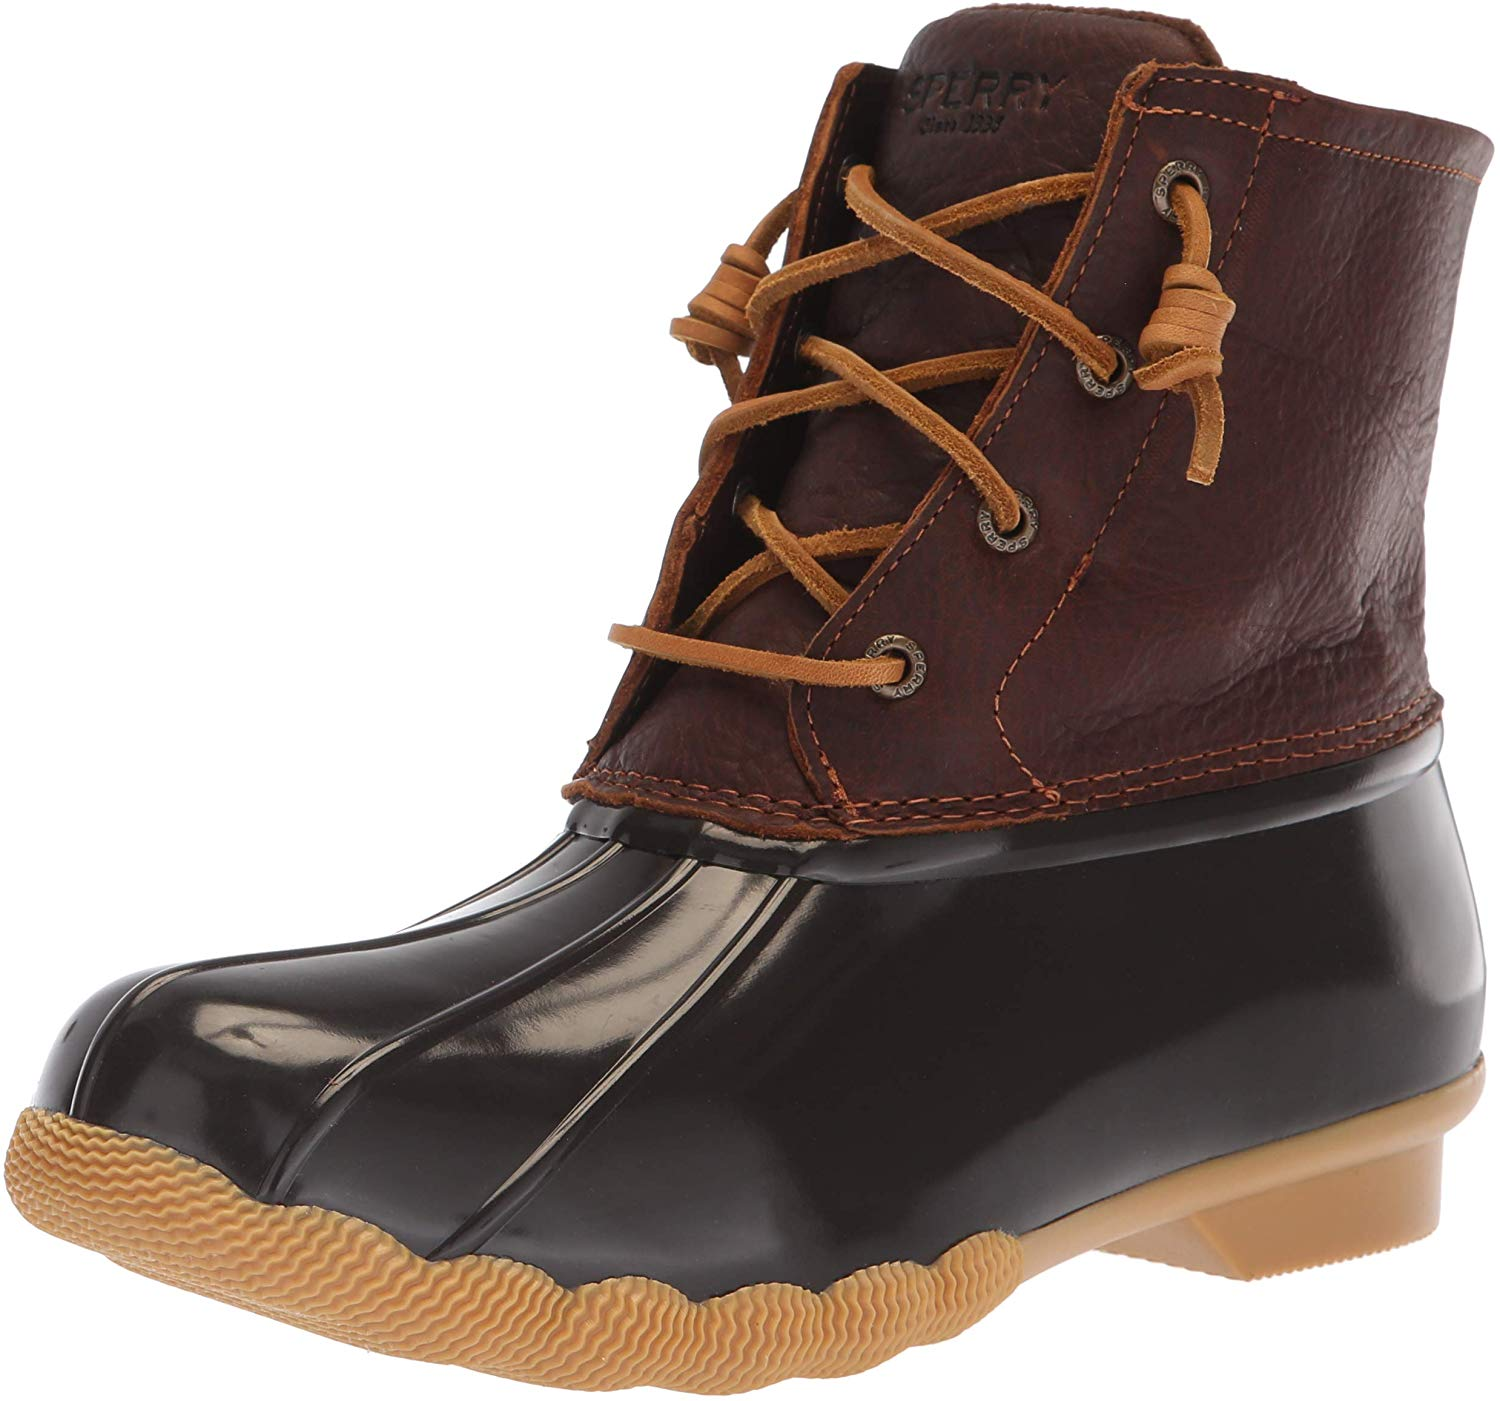 Sperry Womens Saltwater Boots - Tan/Dark Brown - 5